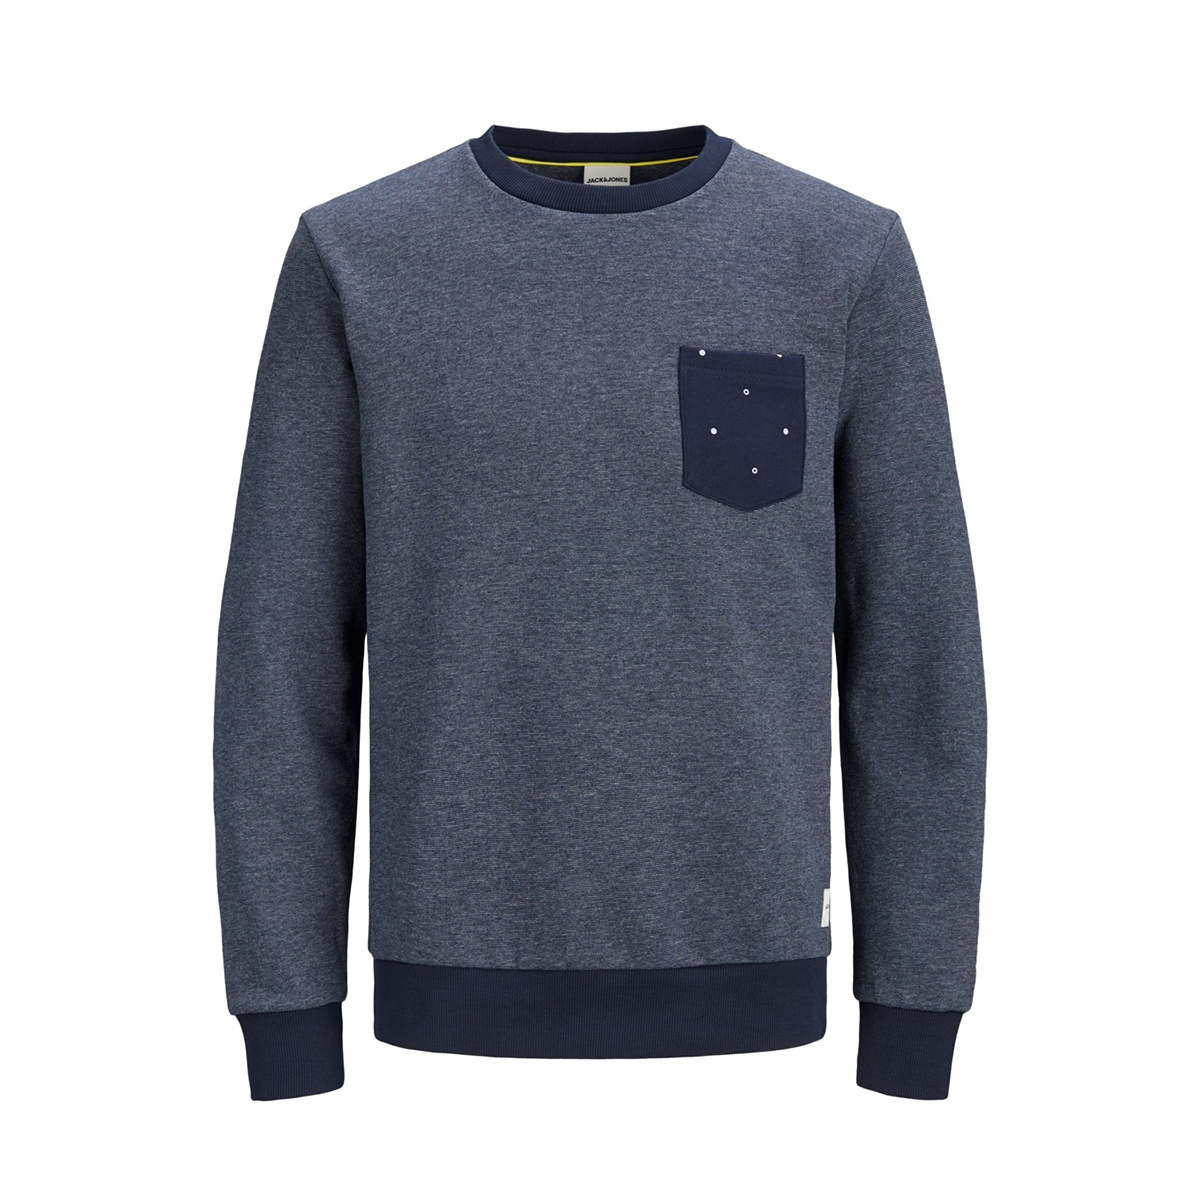 jcohex sweat crew neck 12158831 jack & jones sweater sky captain/ melange